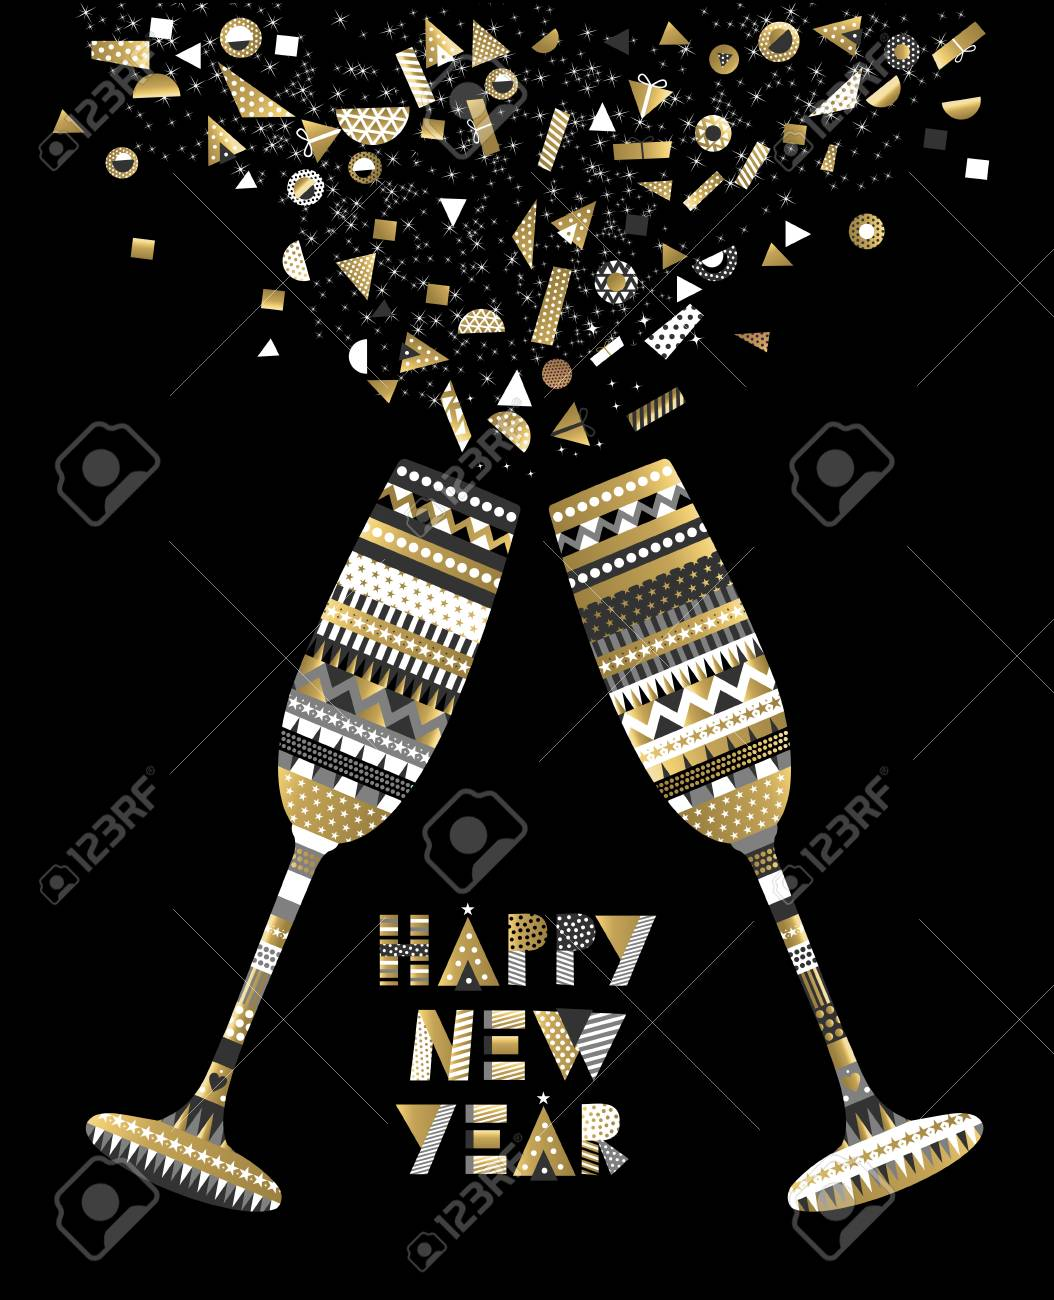 gold happy new year card design with drink glass making toast and abstract elegant decoration